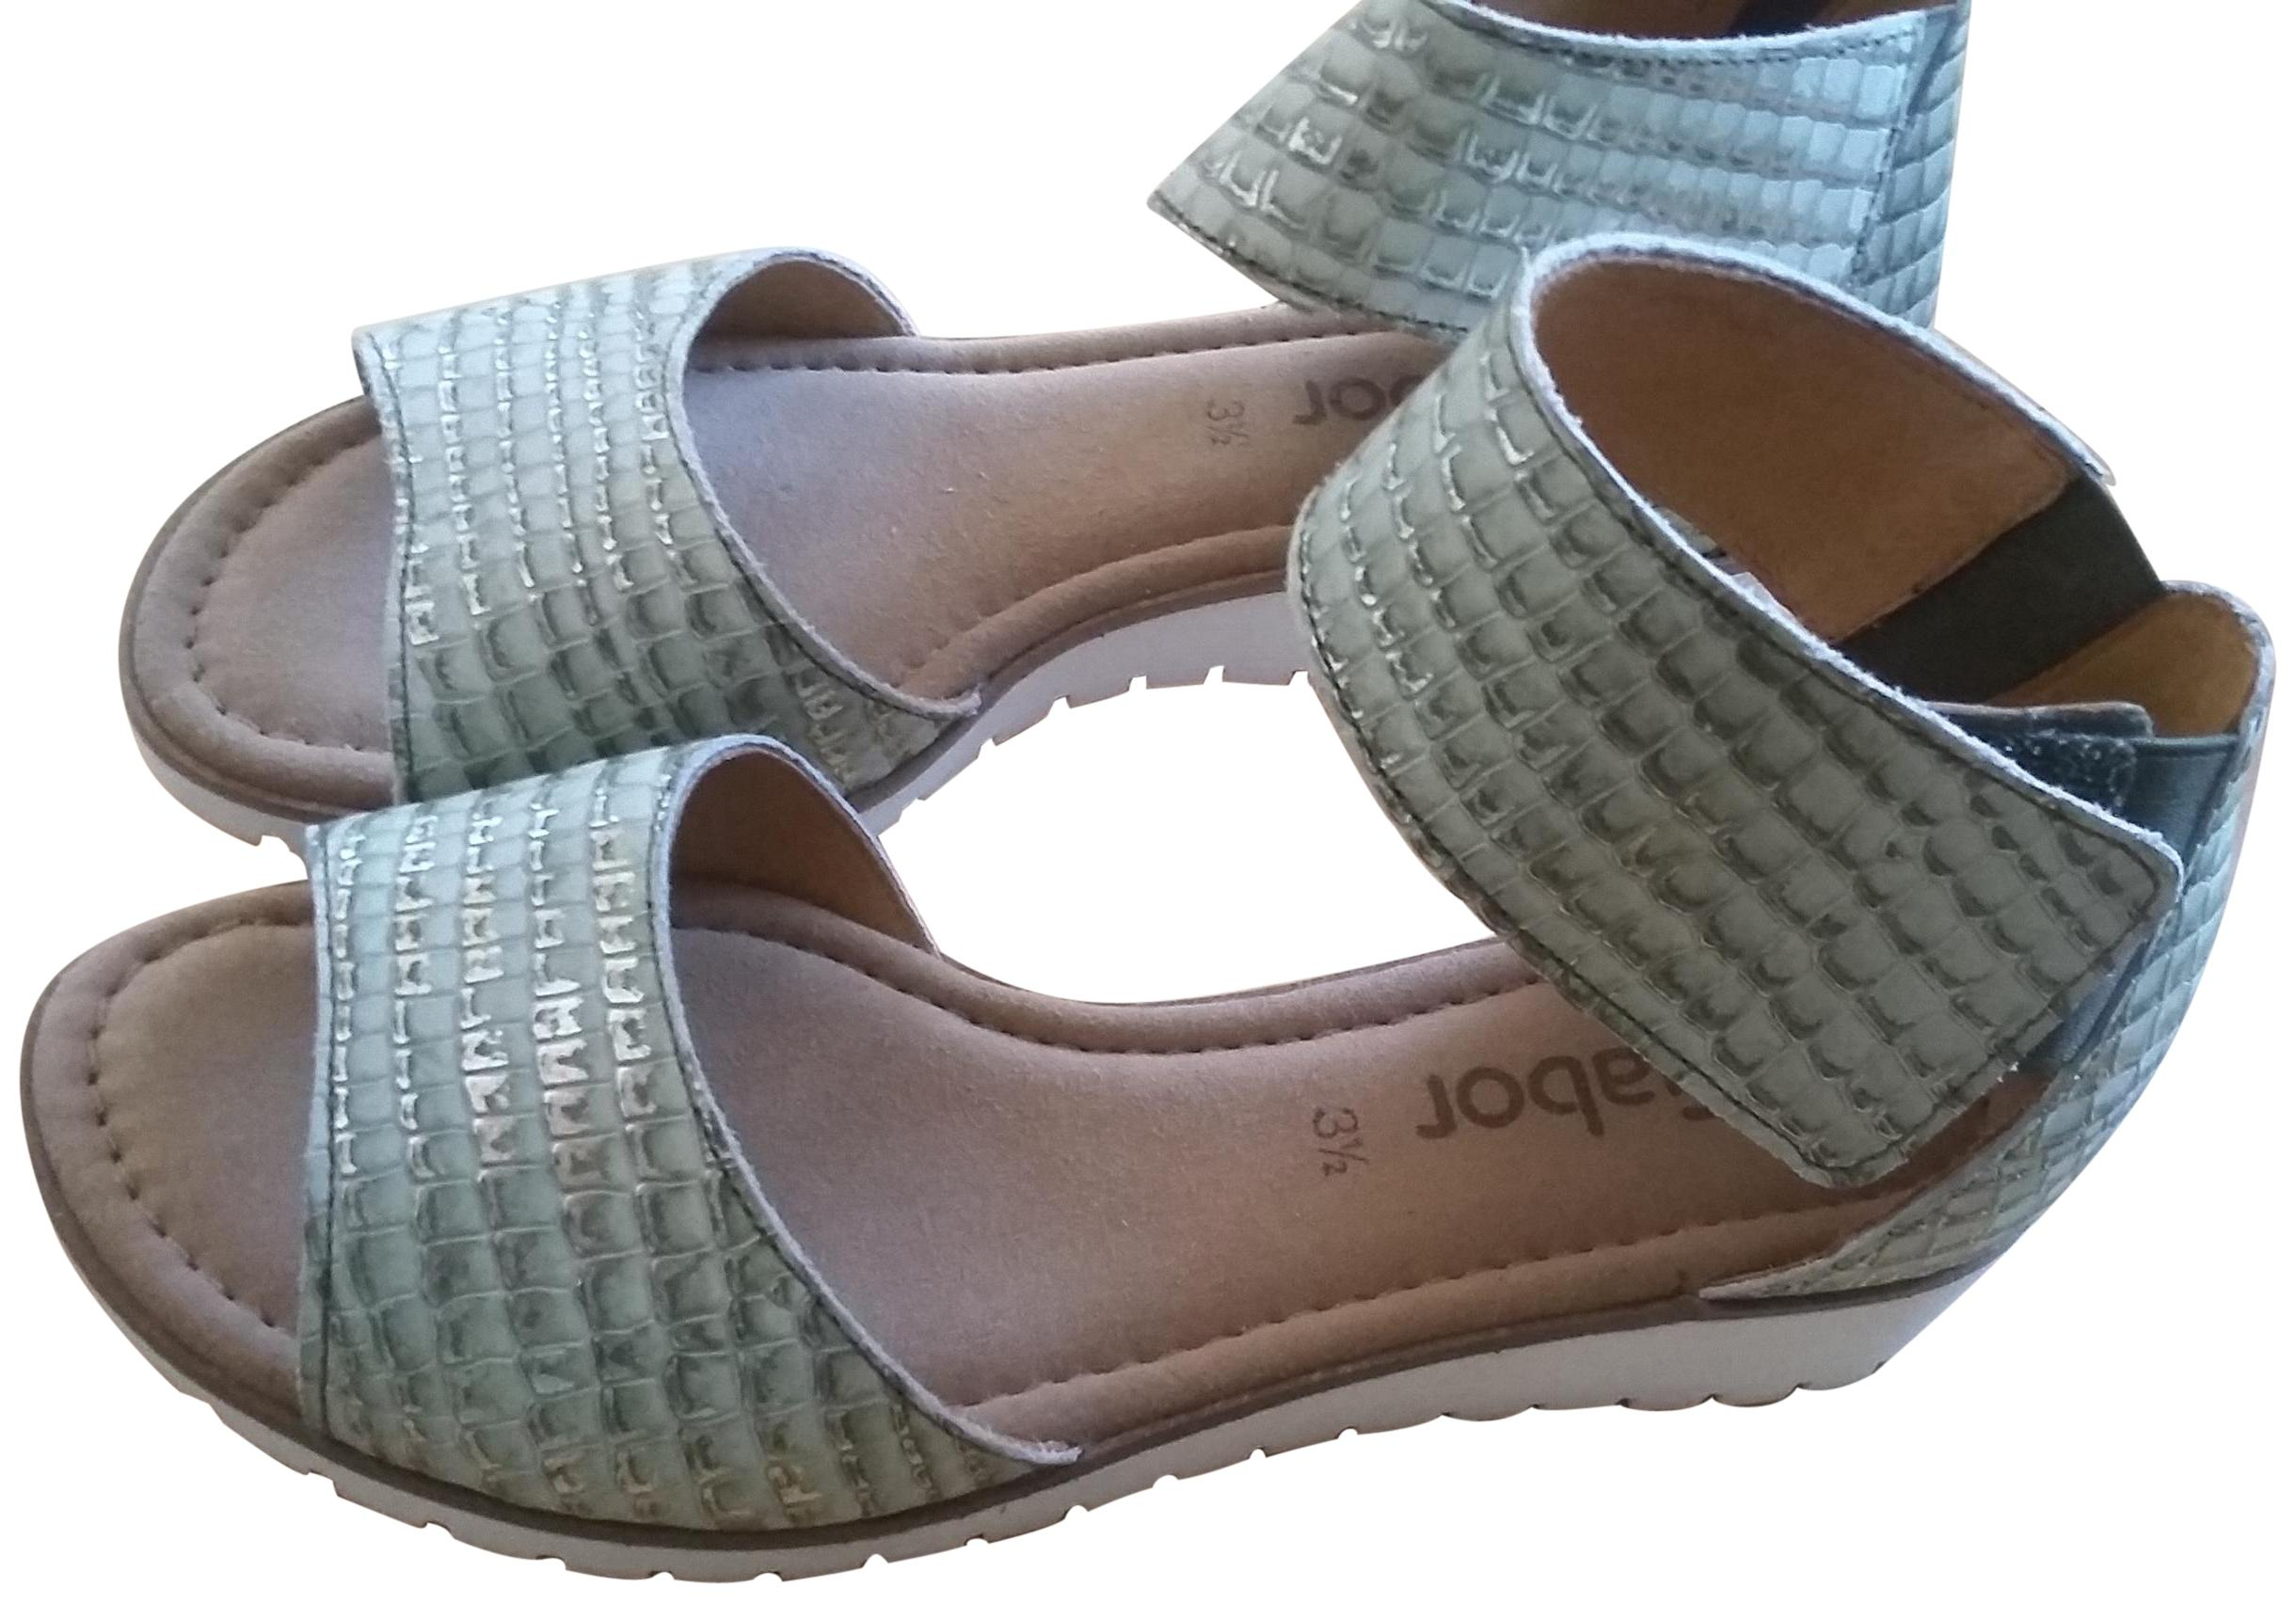 d0e05244a1a6 Gabor Mint Green Kiwi Kroko Piccolo Sandals Size Size Size EU 36 (Approx. US  6) Regular (M